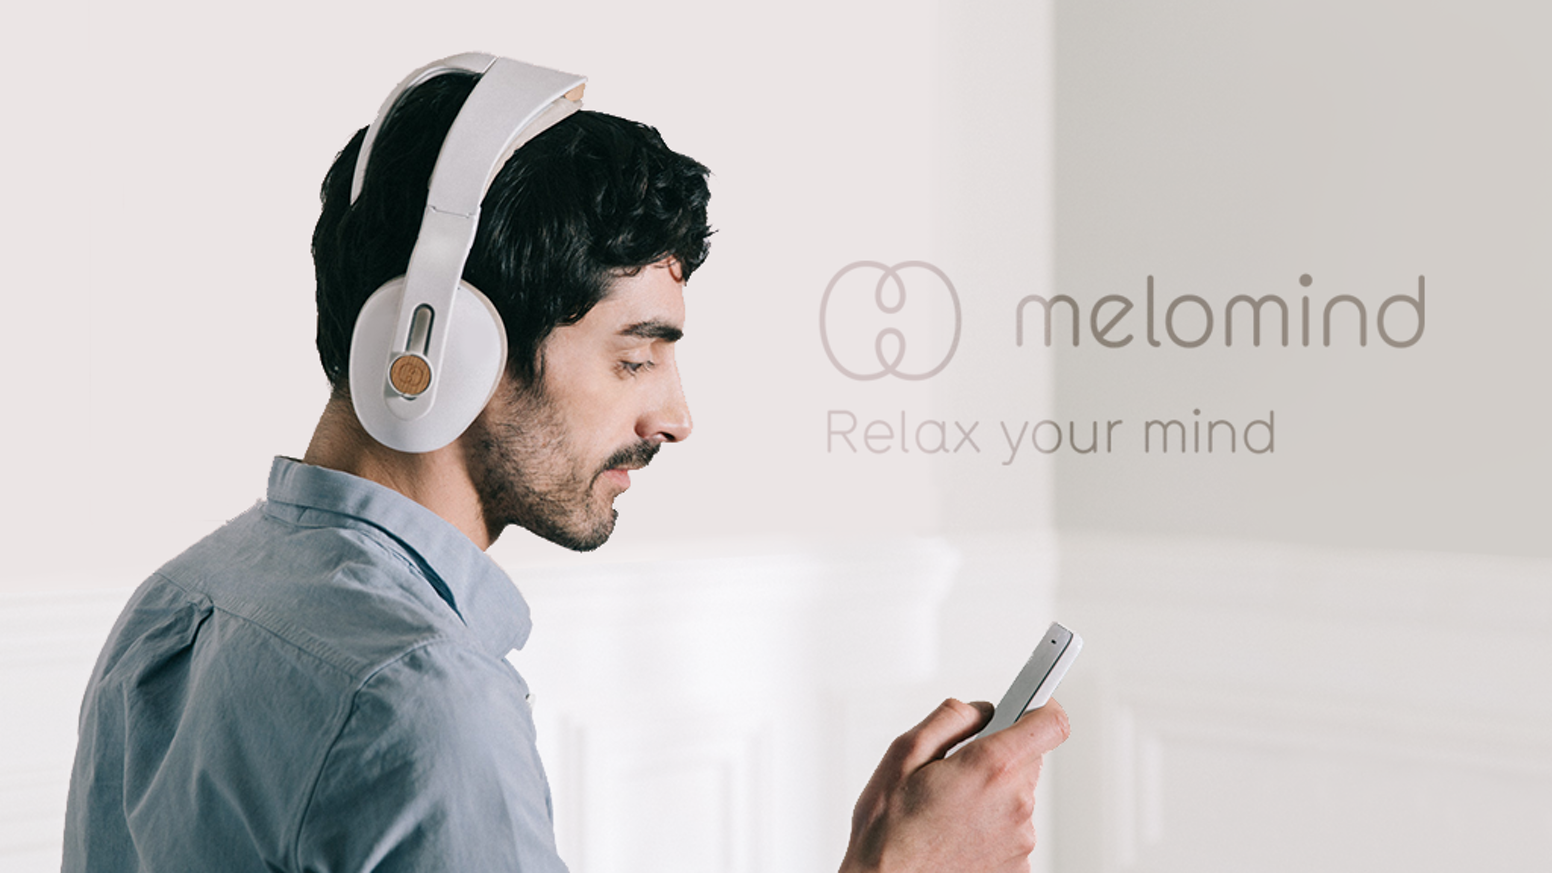 Based on electroencephalographic (EEG) technology, melomind headphones teach you how to relax efficiently and improve your daily life.